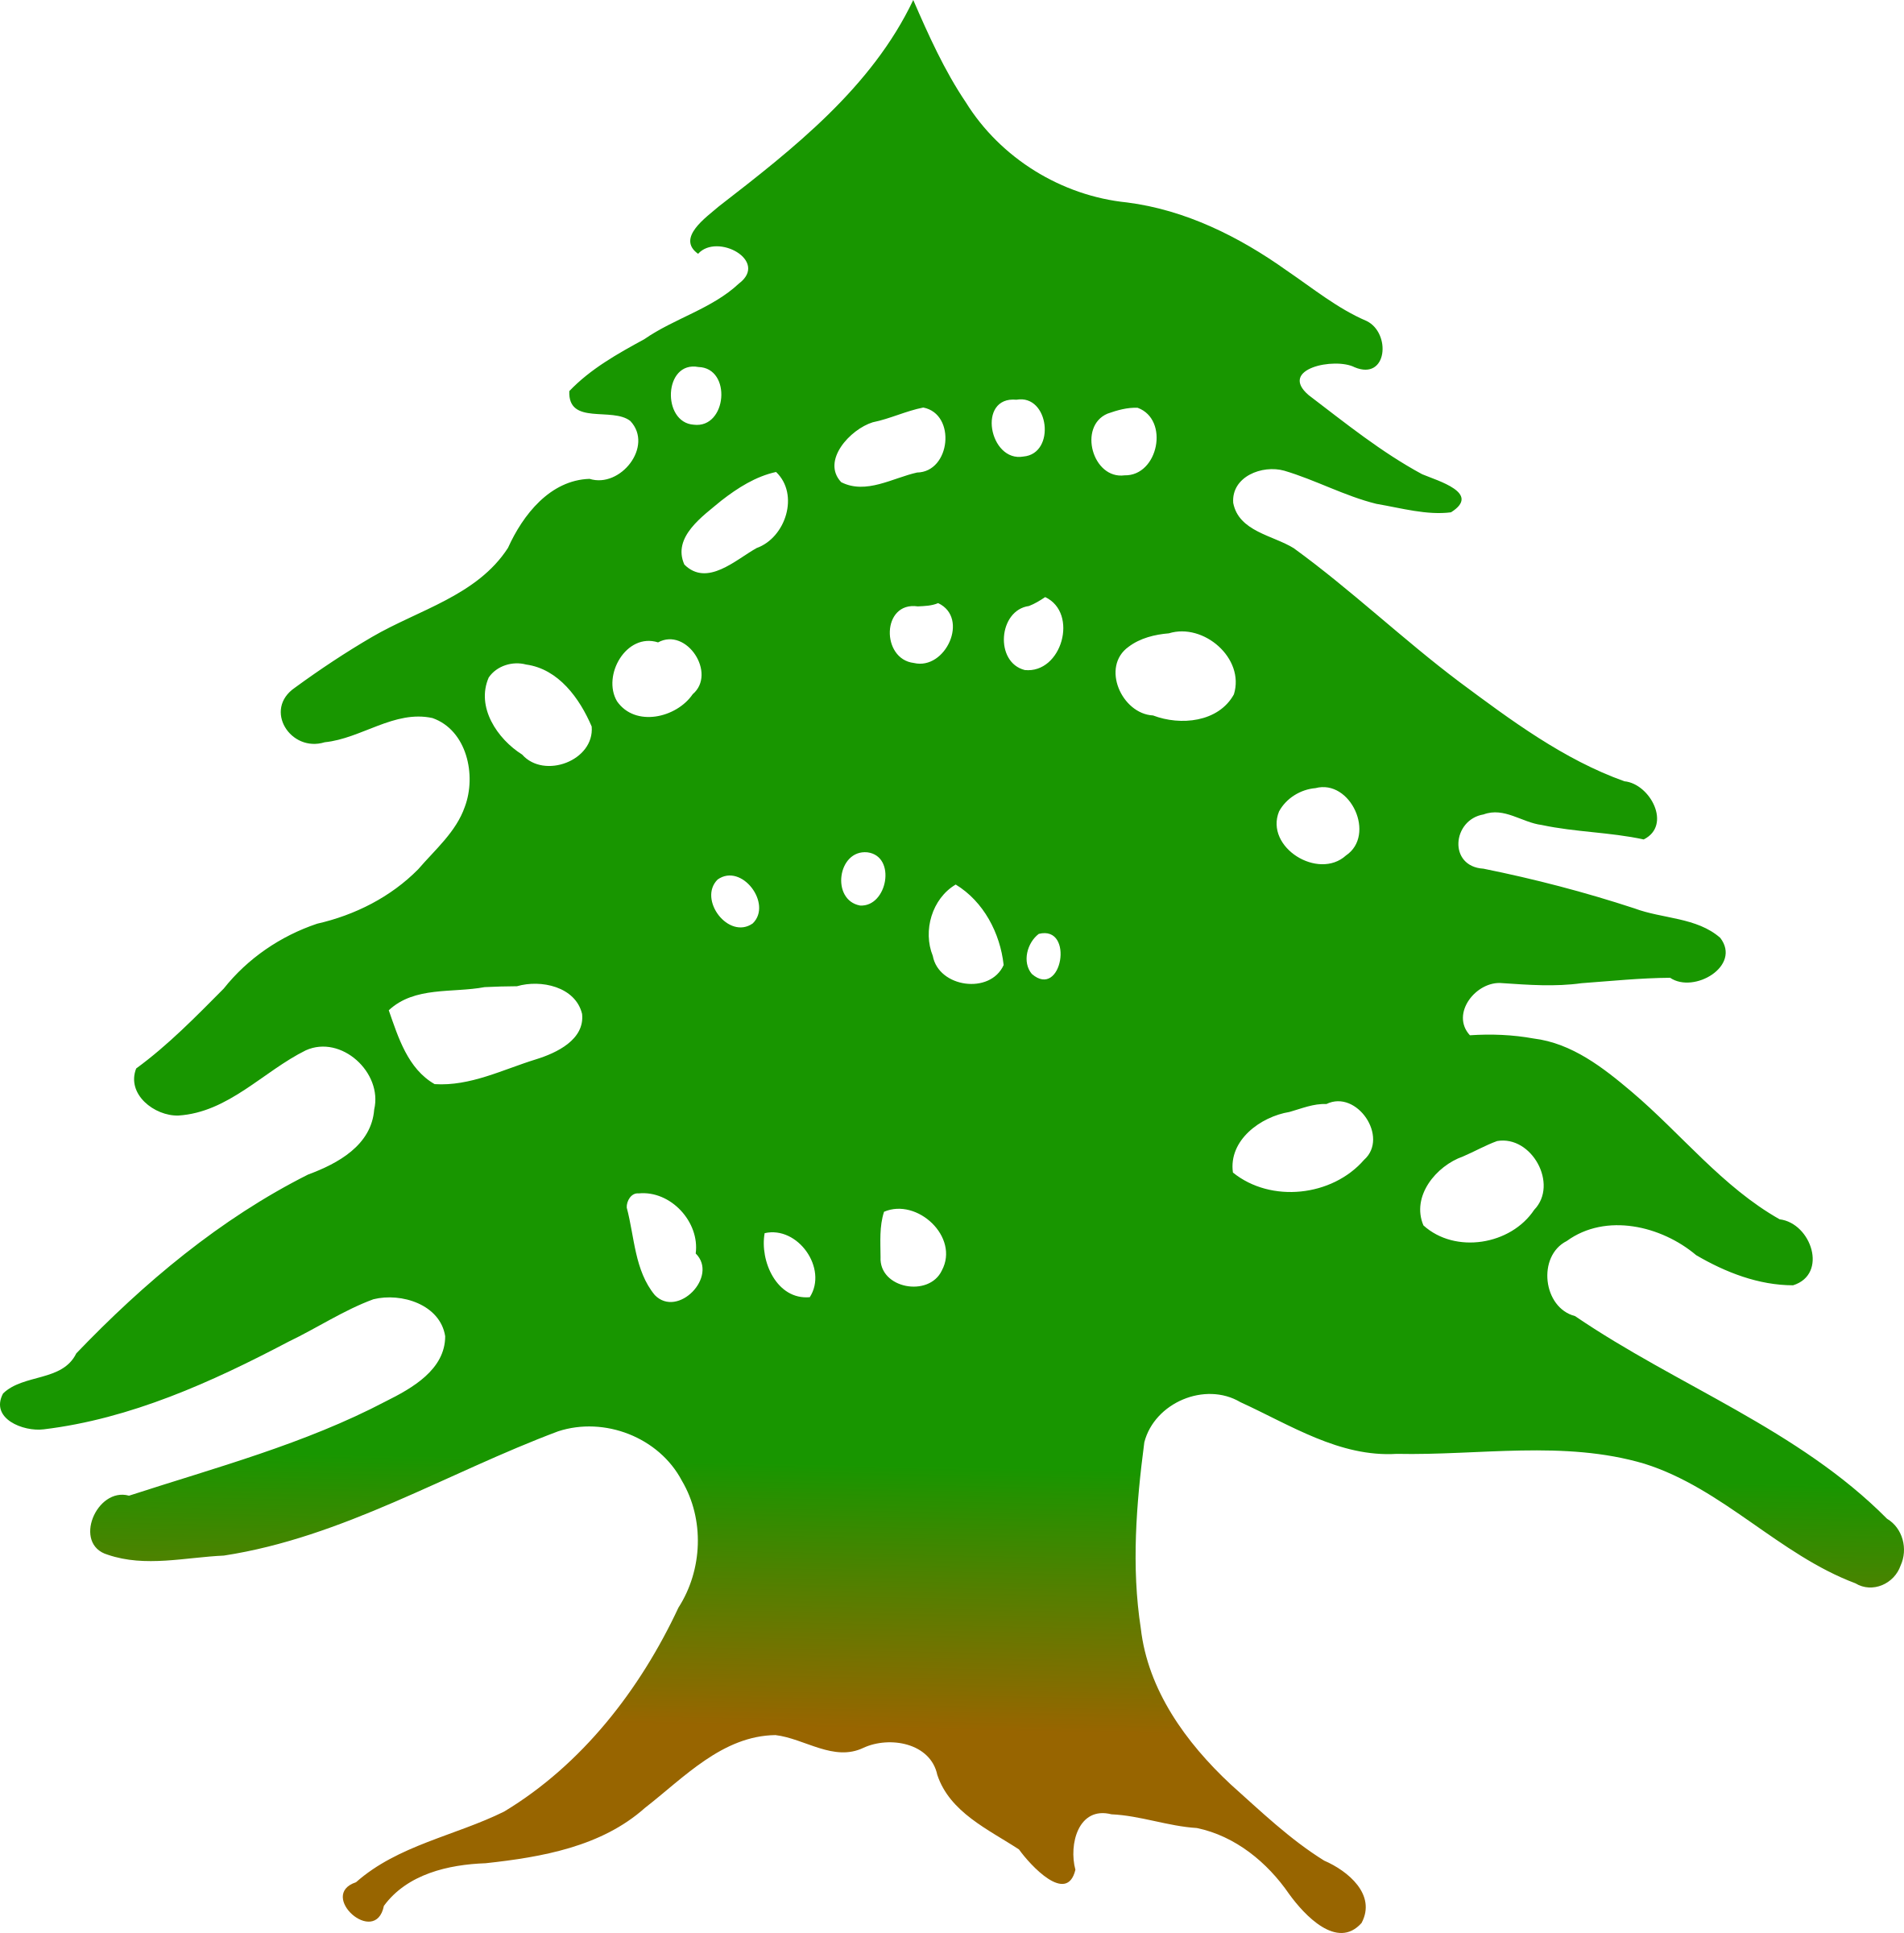 Cedar tree clipart clipart free Clipart - Cedar tree clipart free